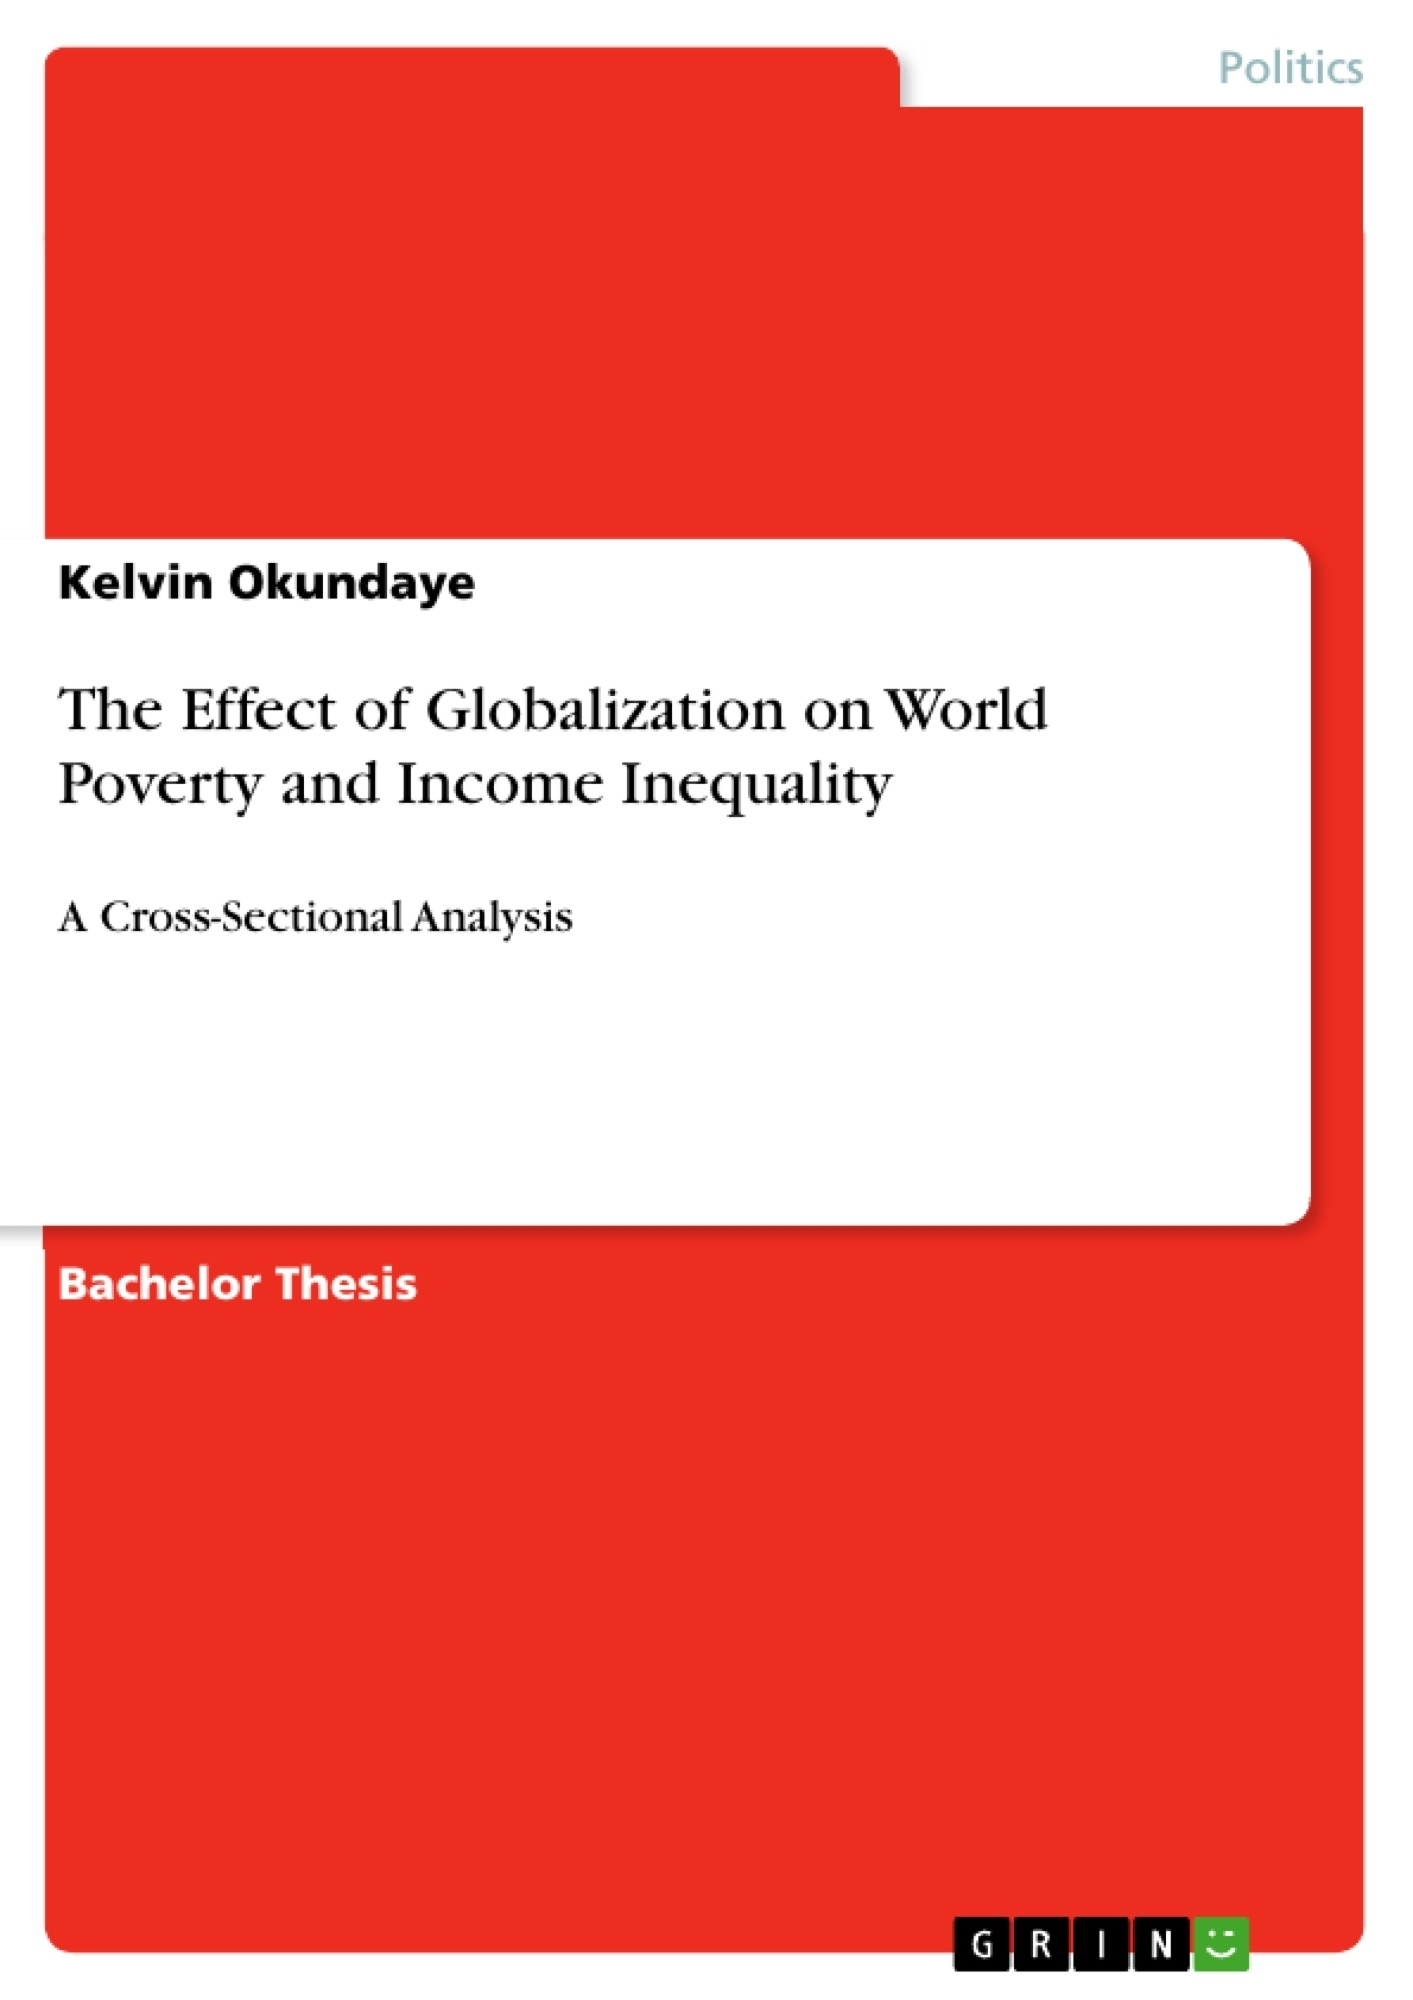 Title: The Effect of Globalization on World Poverty and Income Inequality